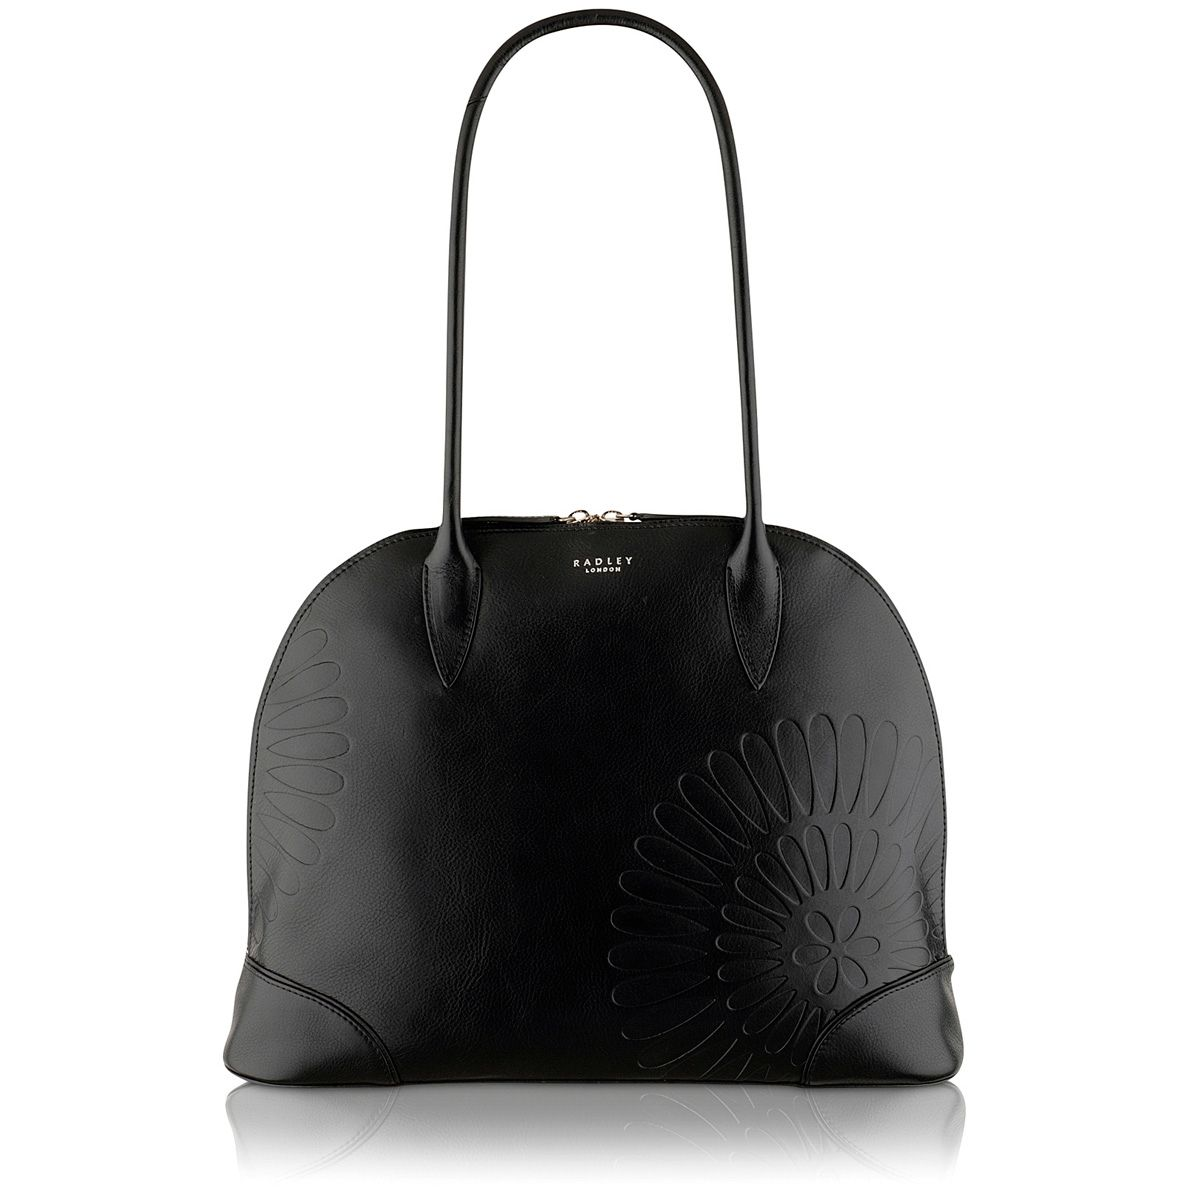 Finch black medium shoulder bag